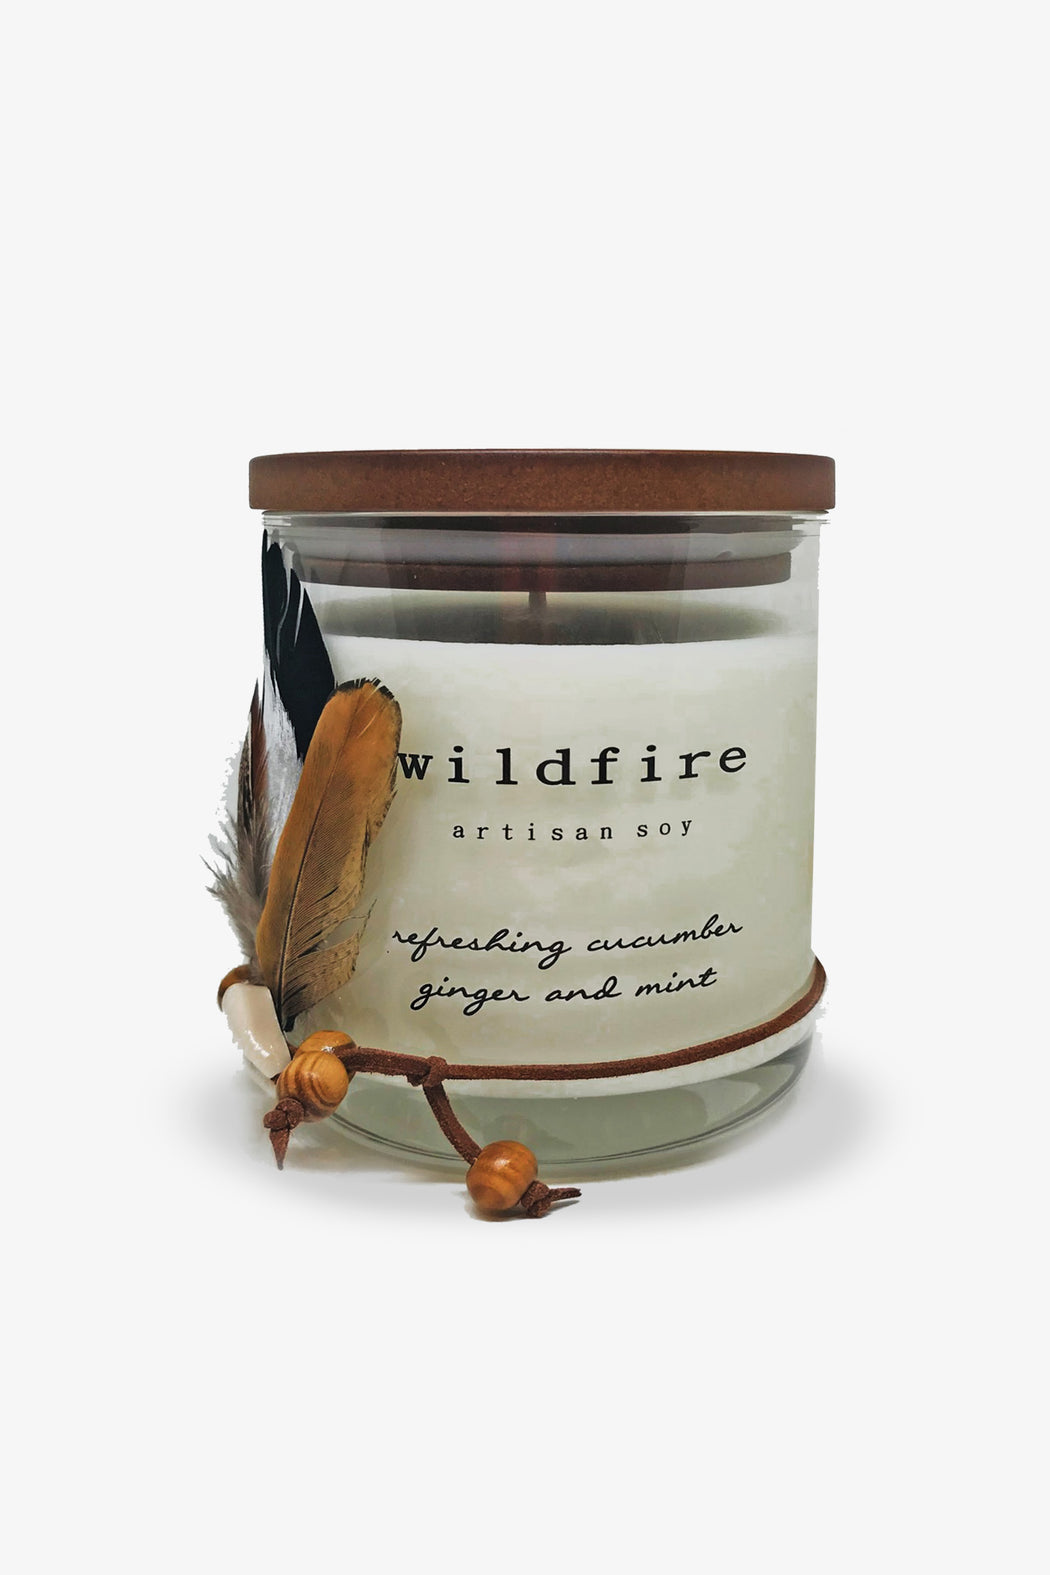 Wildfire-Refreshing Cucumber Ginger and Mint Candle-Mott and Mulberry